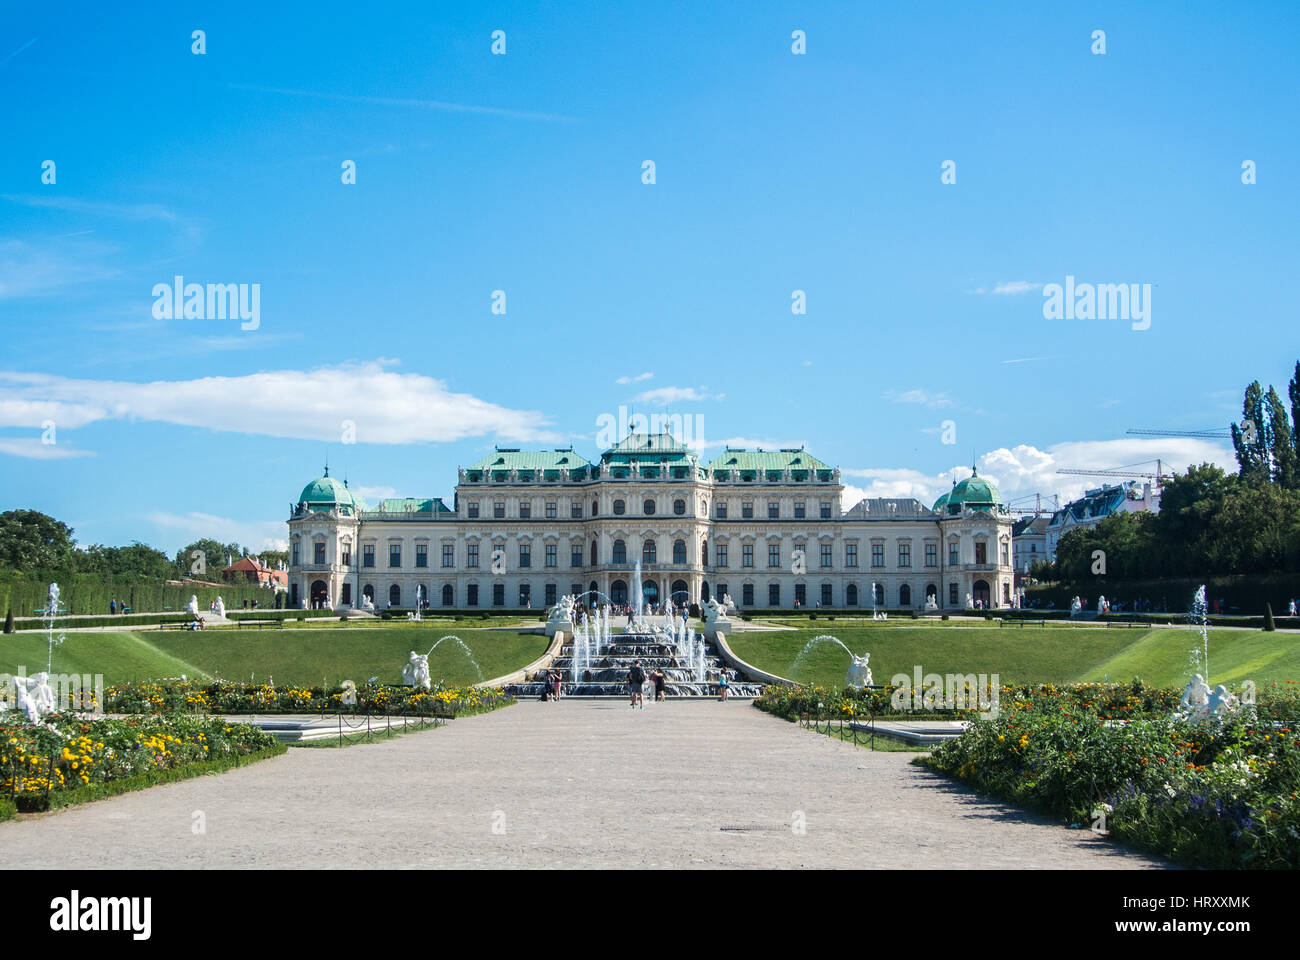 VIENNA, AUSTRIA - JULY 29, 2016: A view of palace Belvedere in Vienna (Austria) and its garden on sunny summer day. - Stock Image